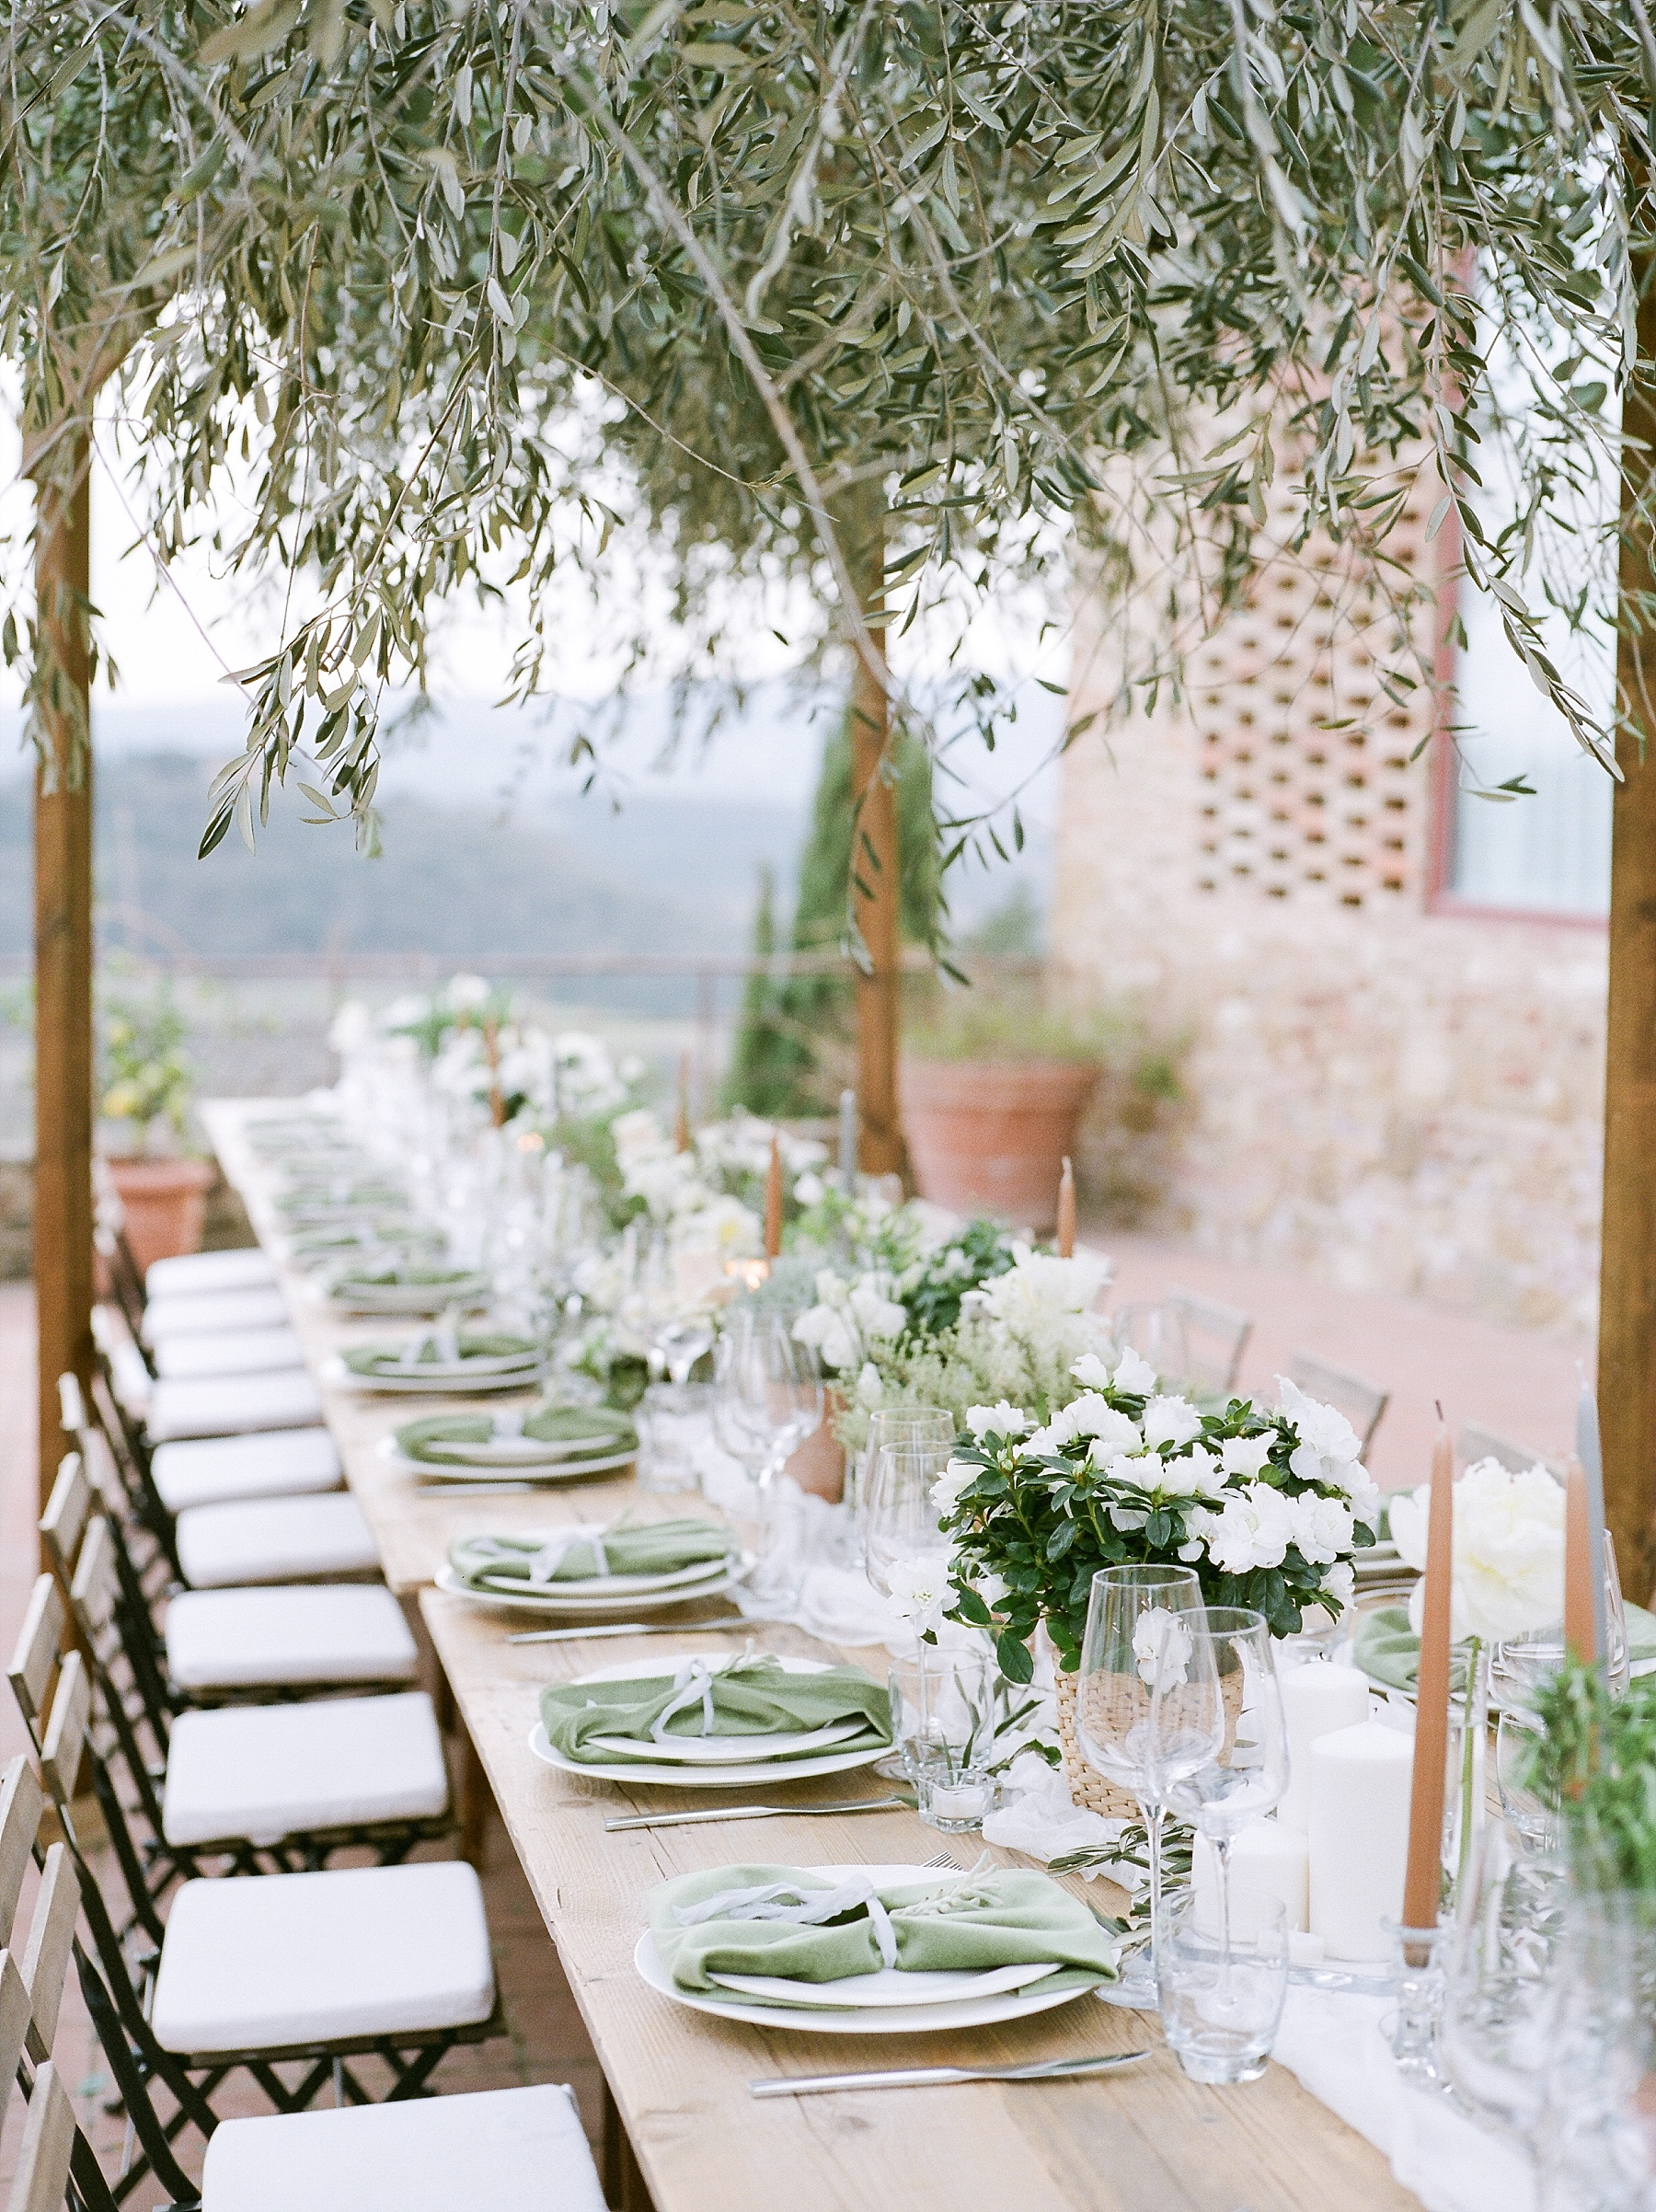 All White Destination Wedding in the Hills of Tuscany Italy at Estate Borgo Petrognano by Kelsi Kliethermes Photography_0068.jpg